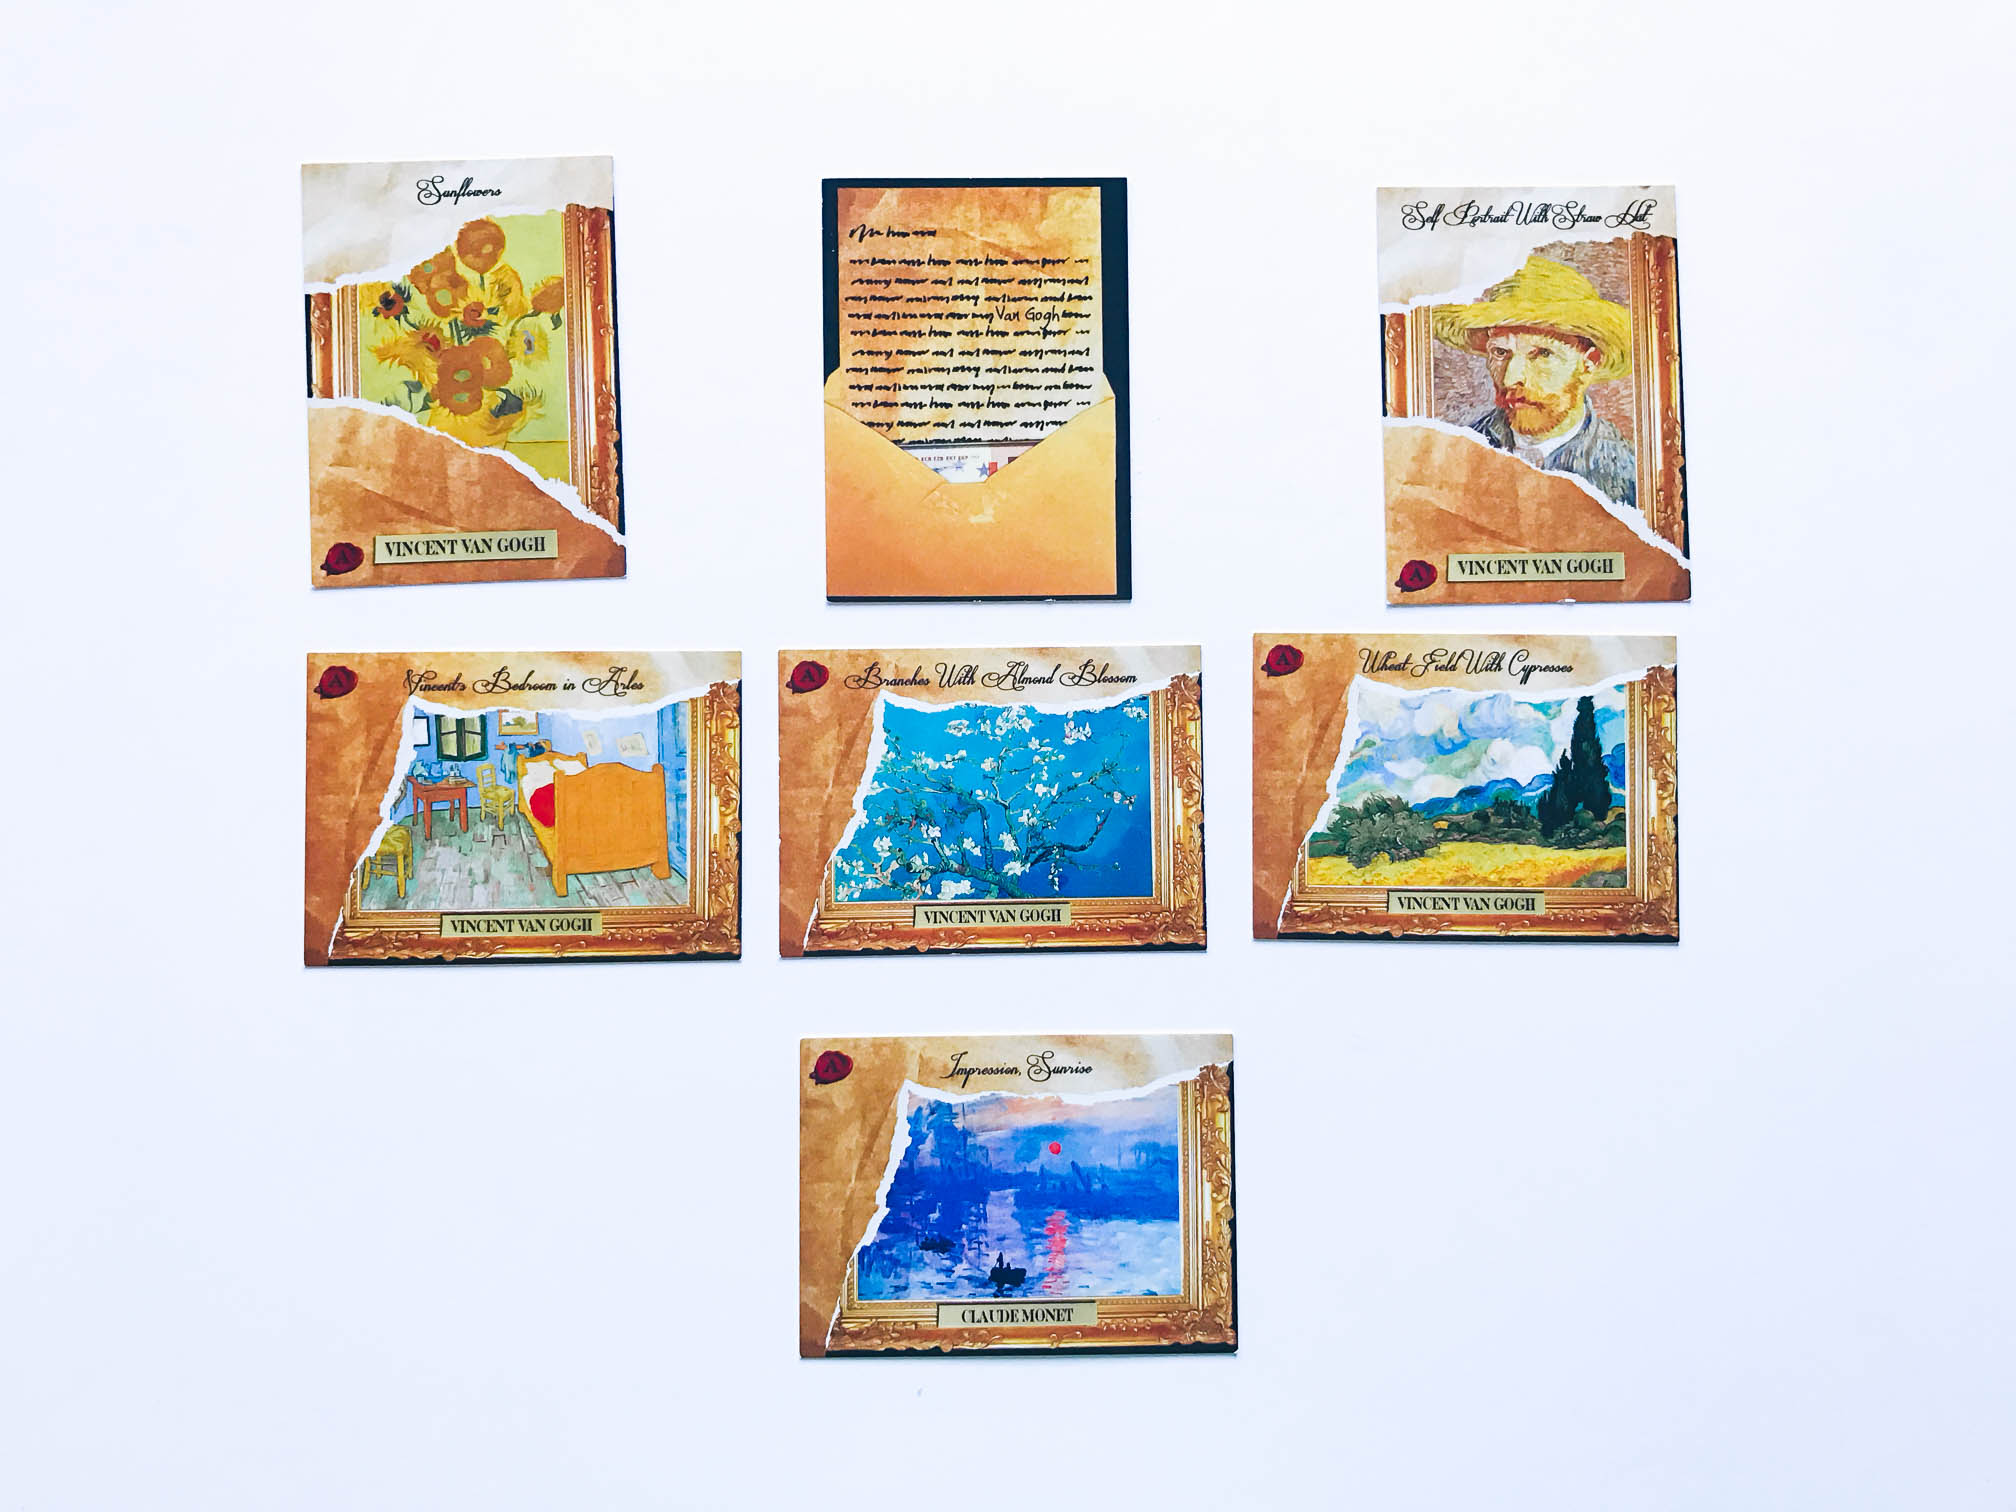 An example of all available authentic cards from Van Gogh.